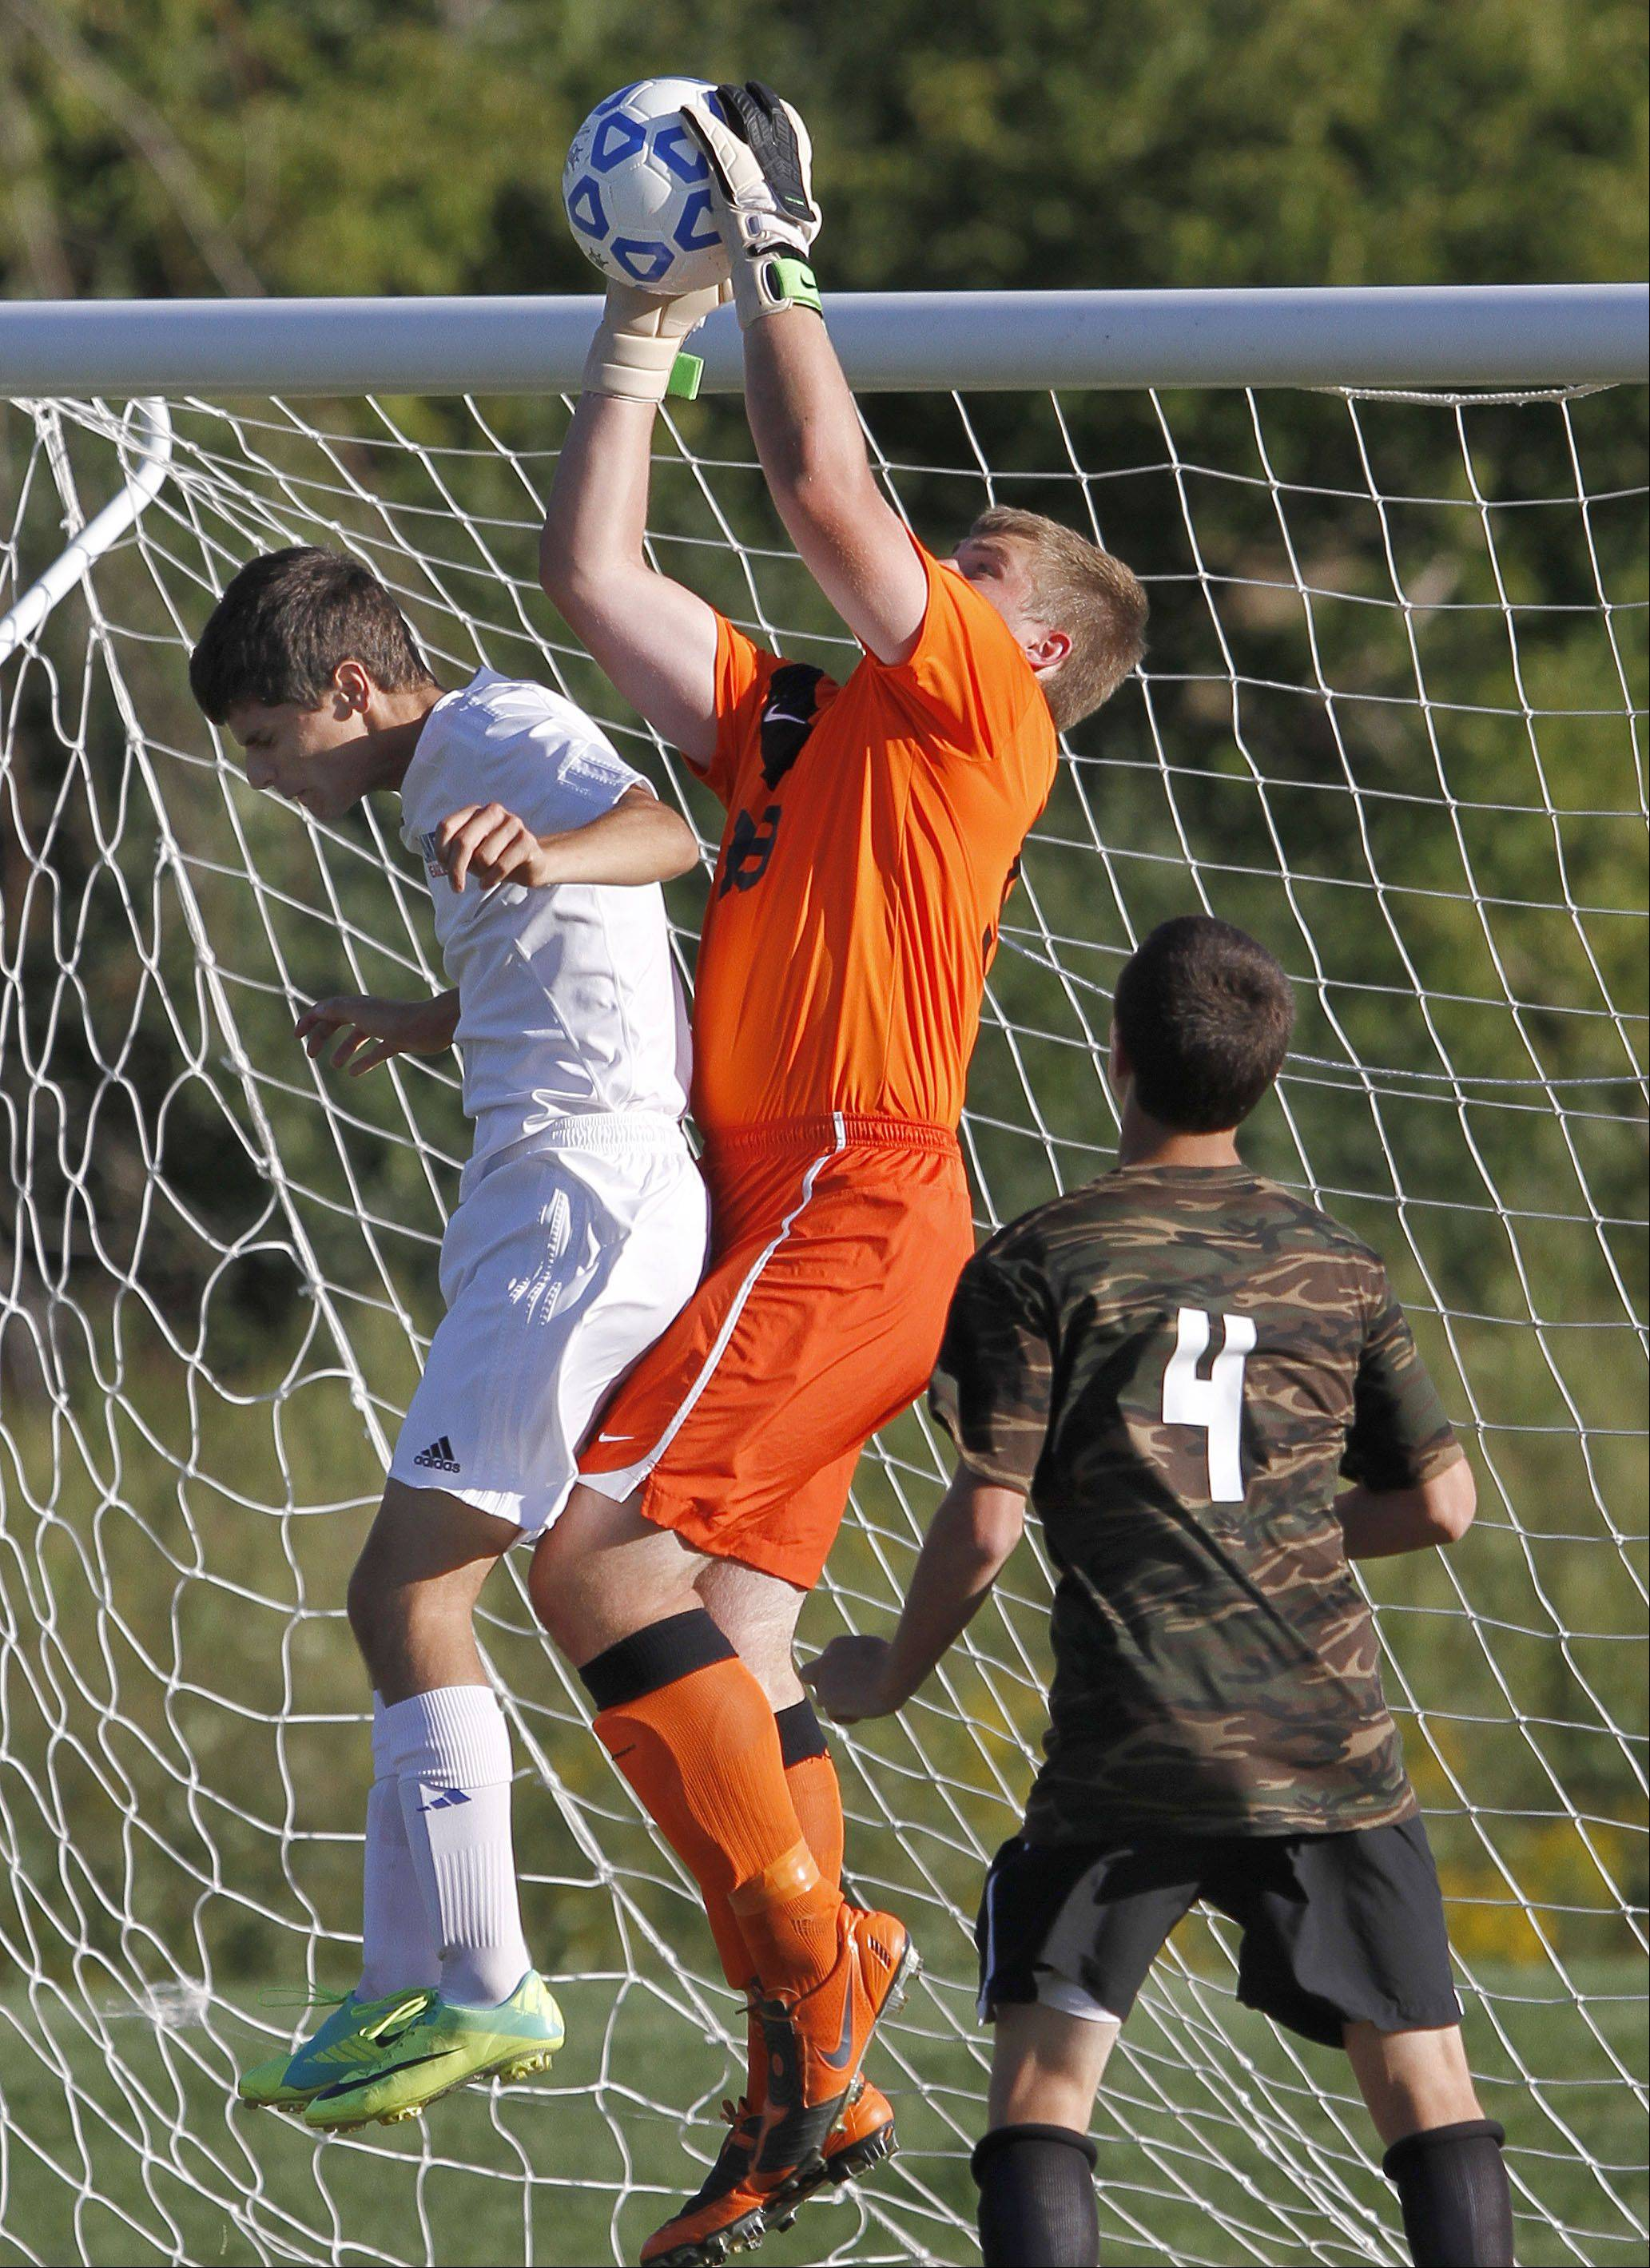 Antioch goalie Tommy Tritschler, middle, goes up for a ball with Lakes' Joey Savino as Antioch's Thomas Furlong looks on during their game Tuesday in Lake Villa.